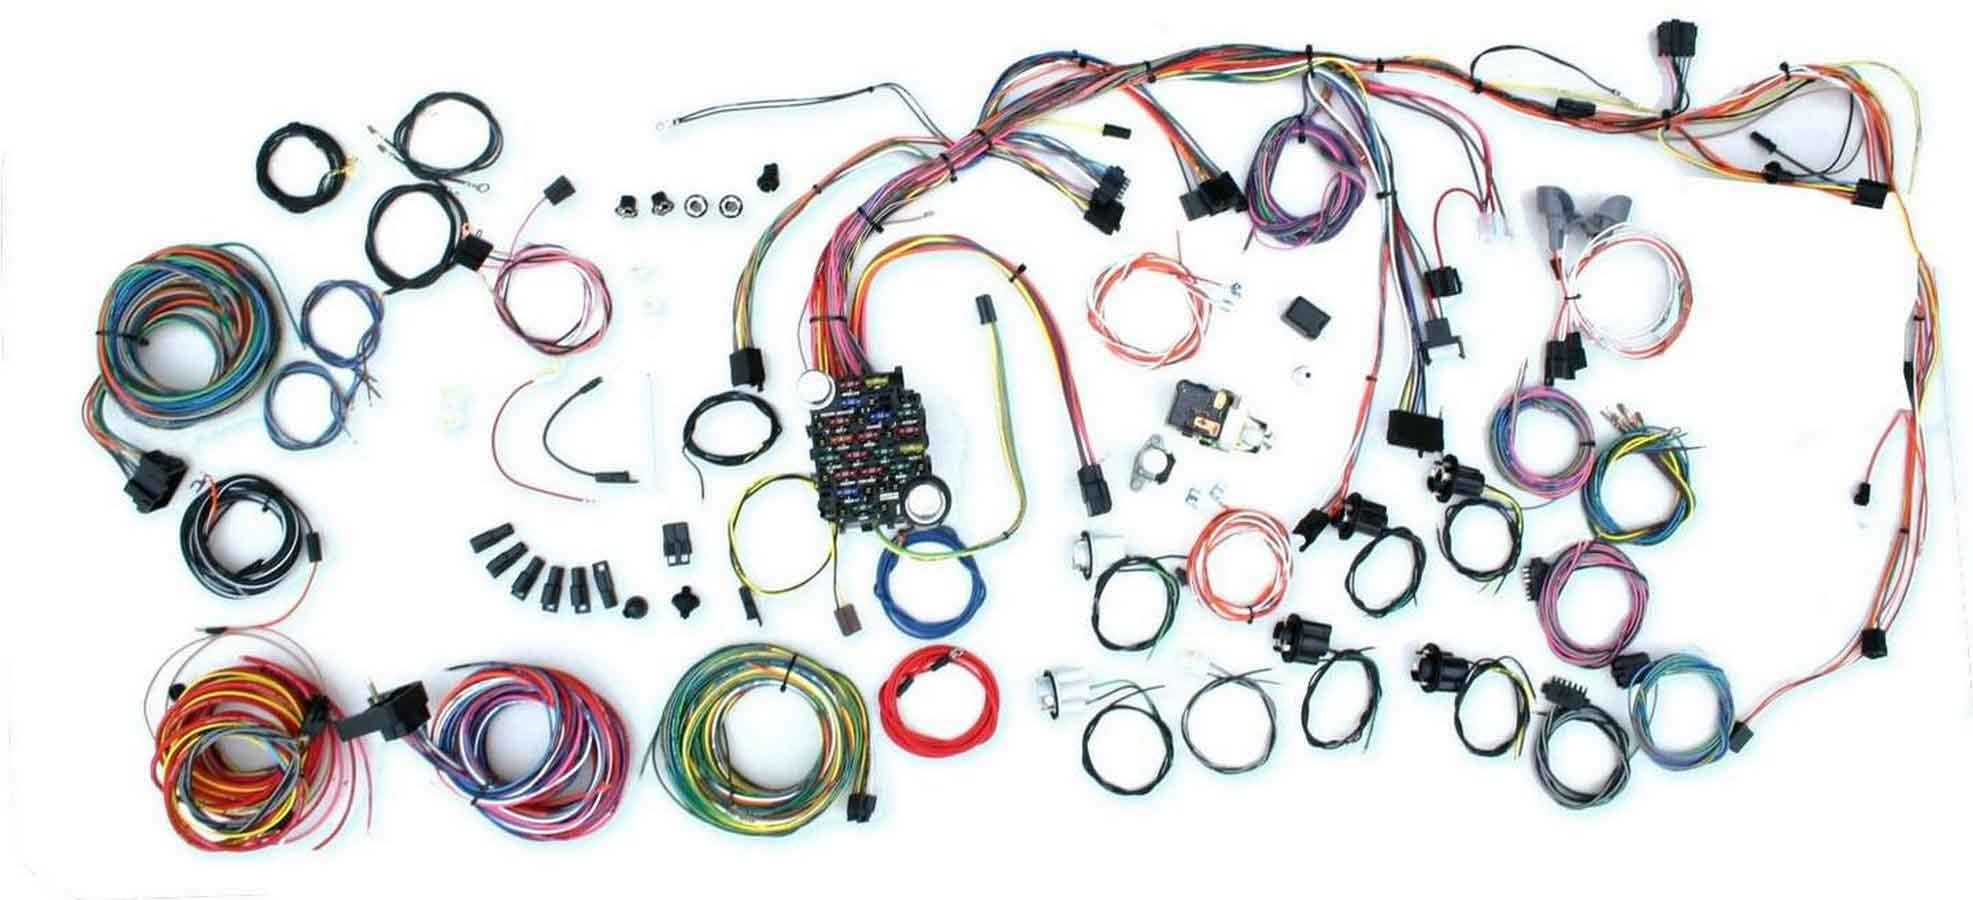 American Autowire 500686 Car Wiring Harness, Classic Update, Complete, Camaro 1969, Kit